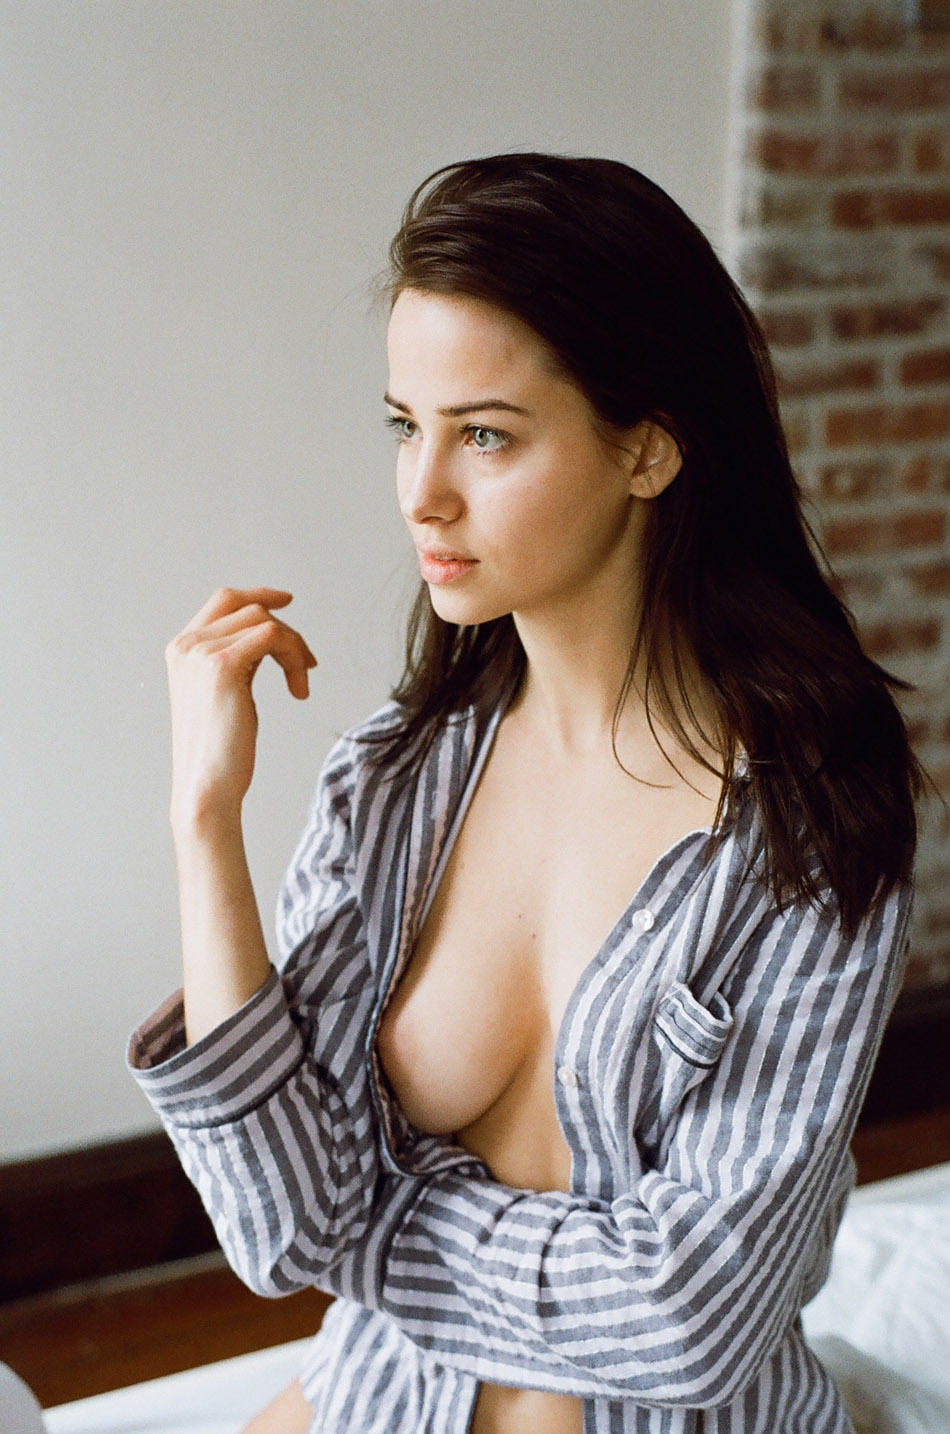 image Larissa its not possible easy to satisfy a woman